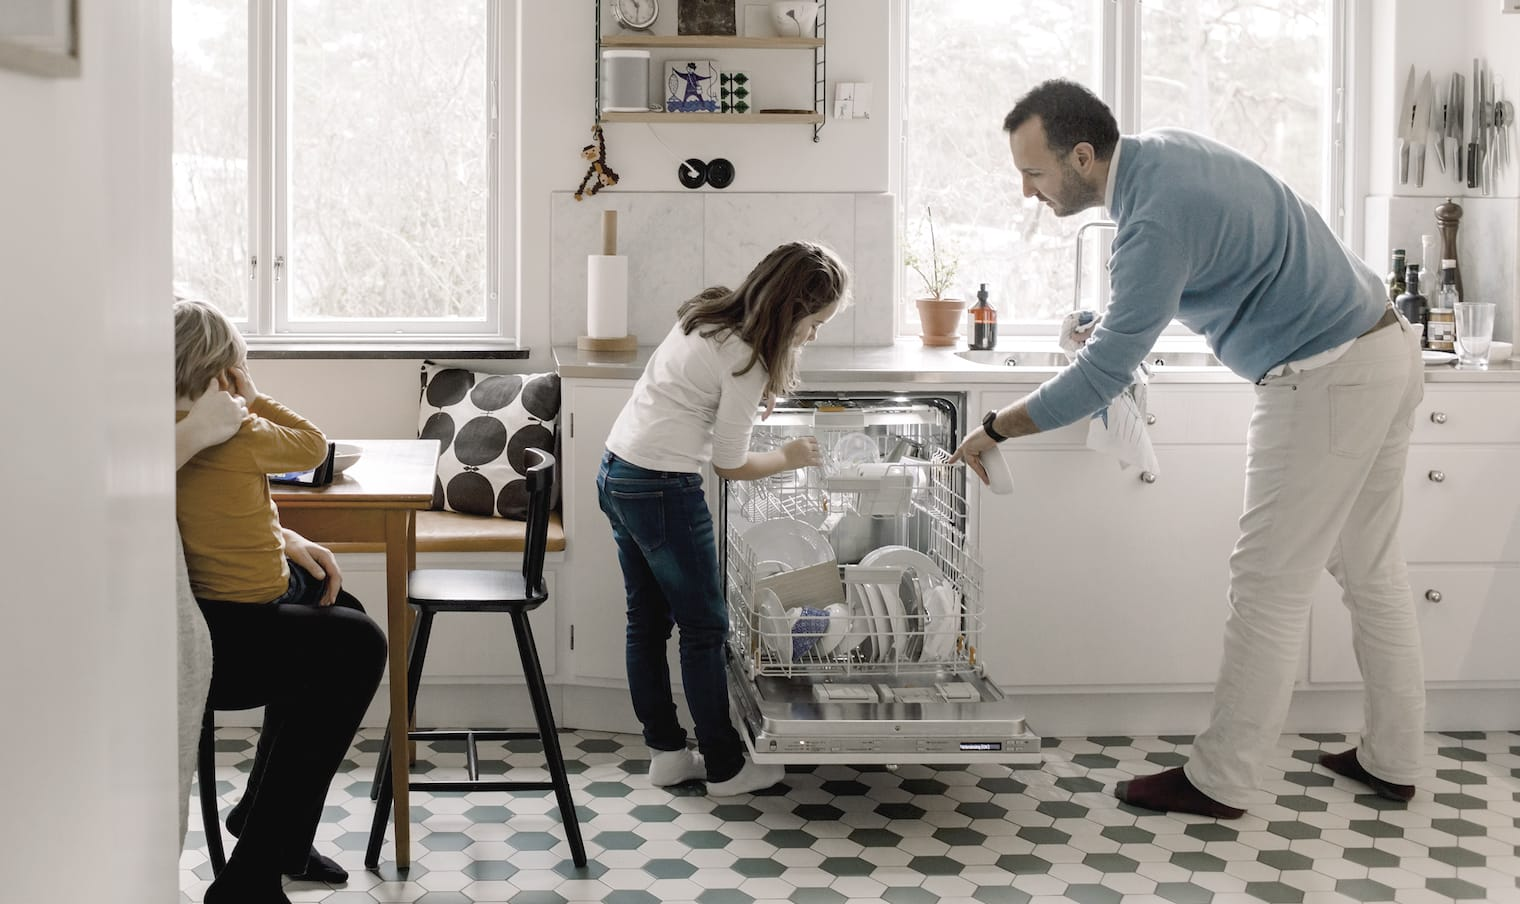 A father loads the dishwasher with his daughter